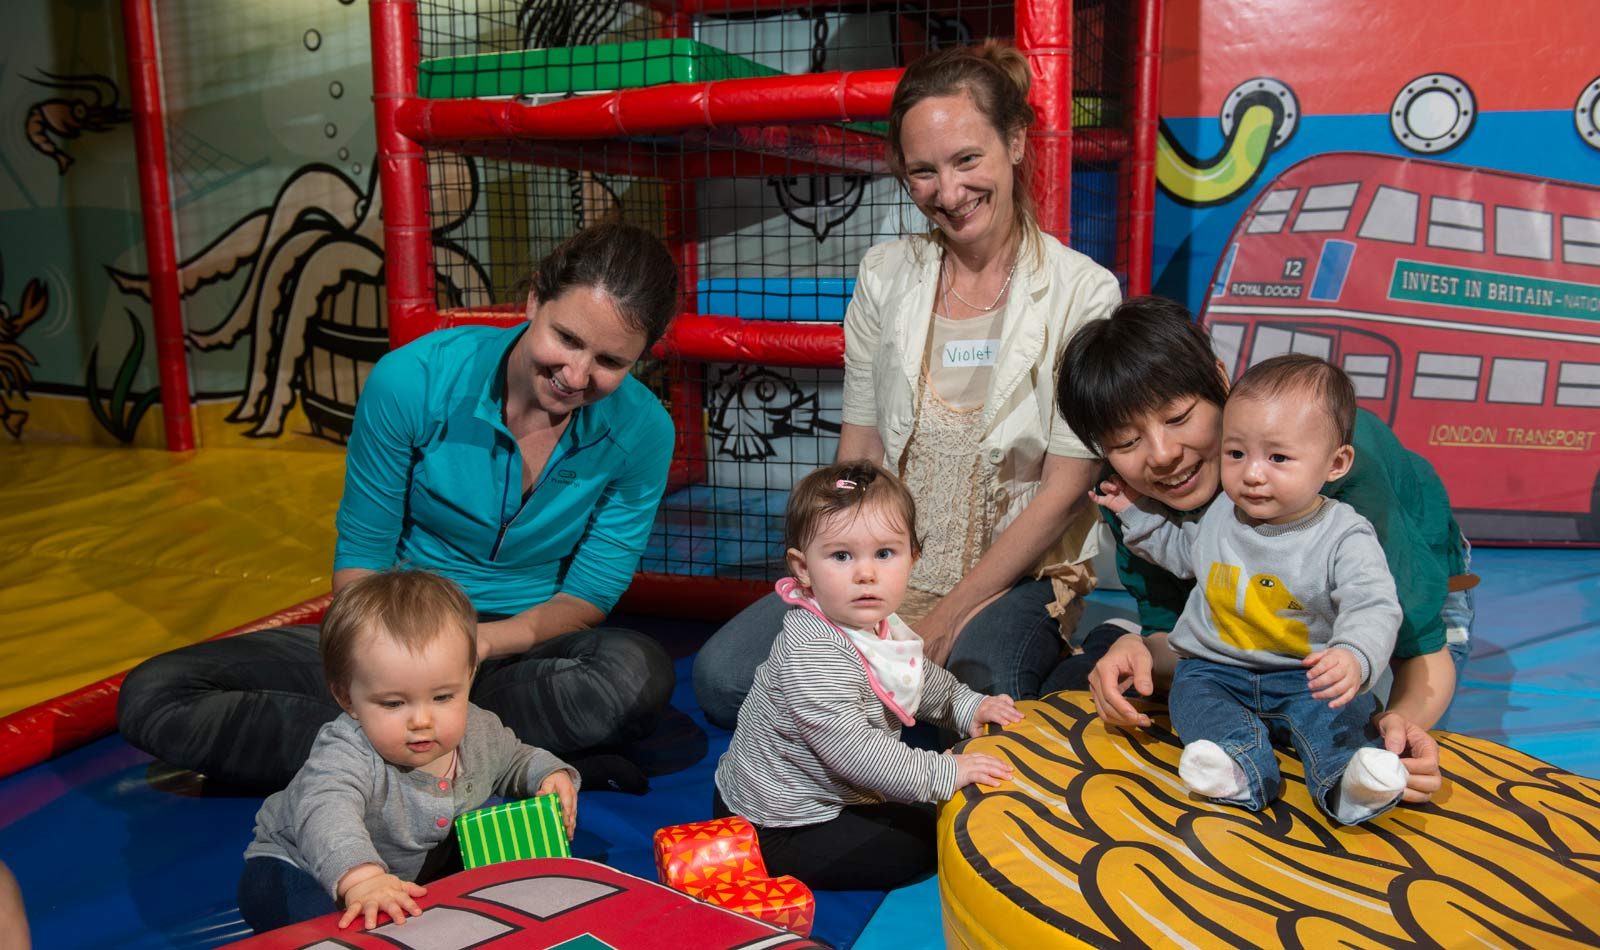 Children and their parents enjoy the soft play area in the Museum of London Docklands Mudlarks gallery.